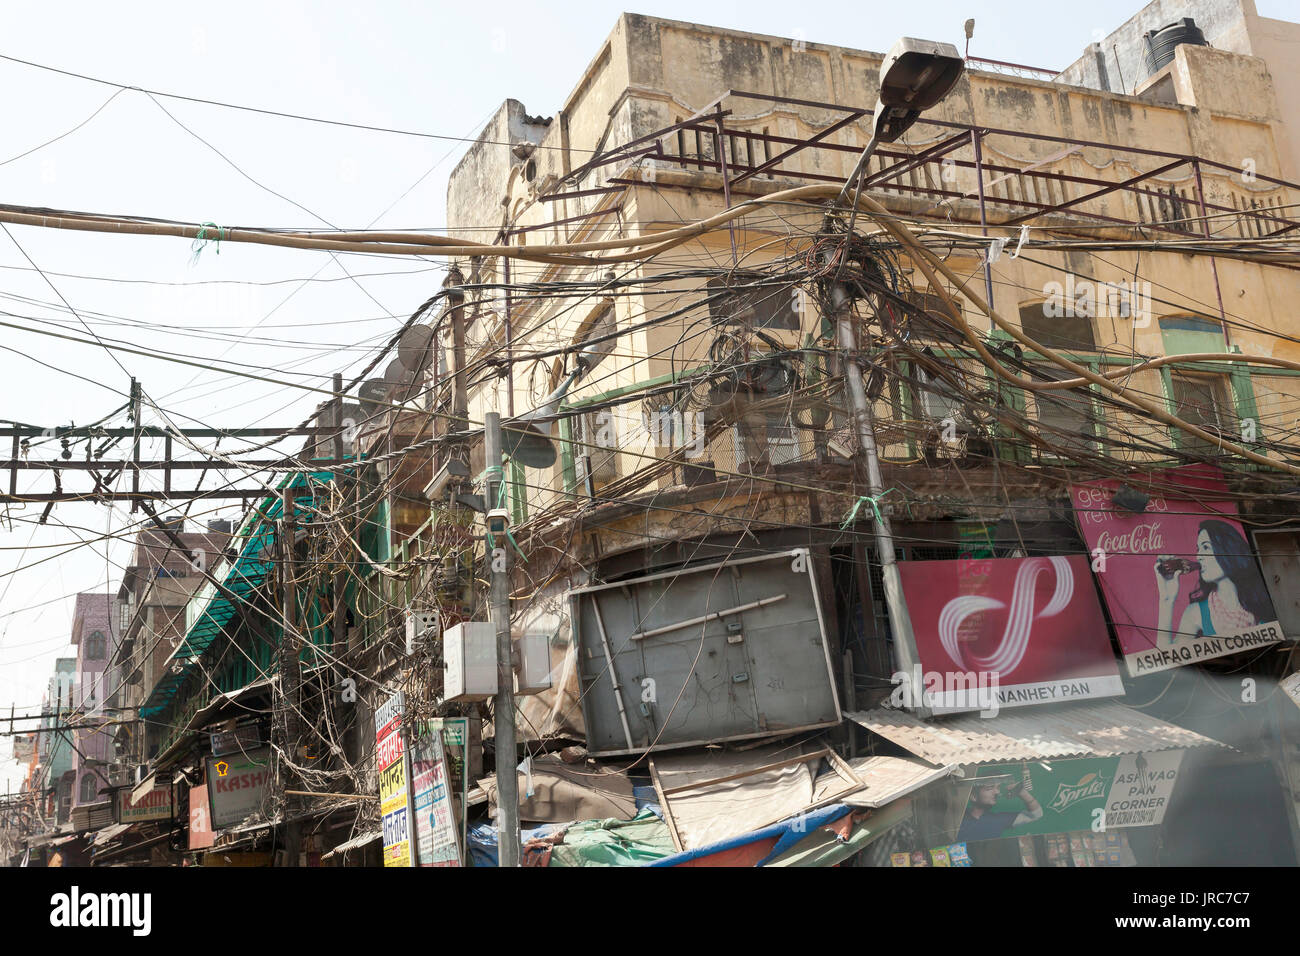 electrical wiring in delhi india on the street stock photo rh alamy com India Power Pole India Electricity